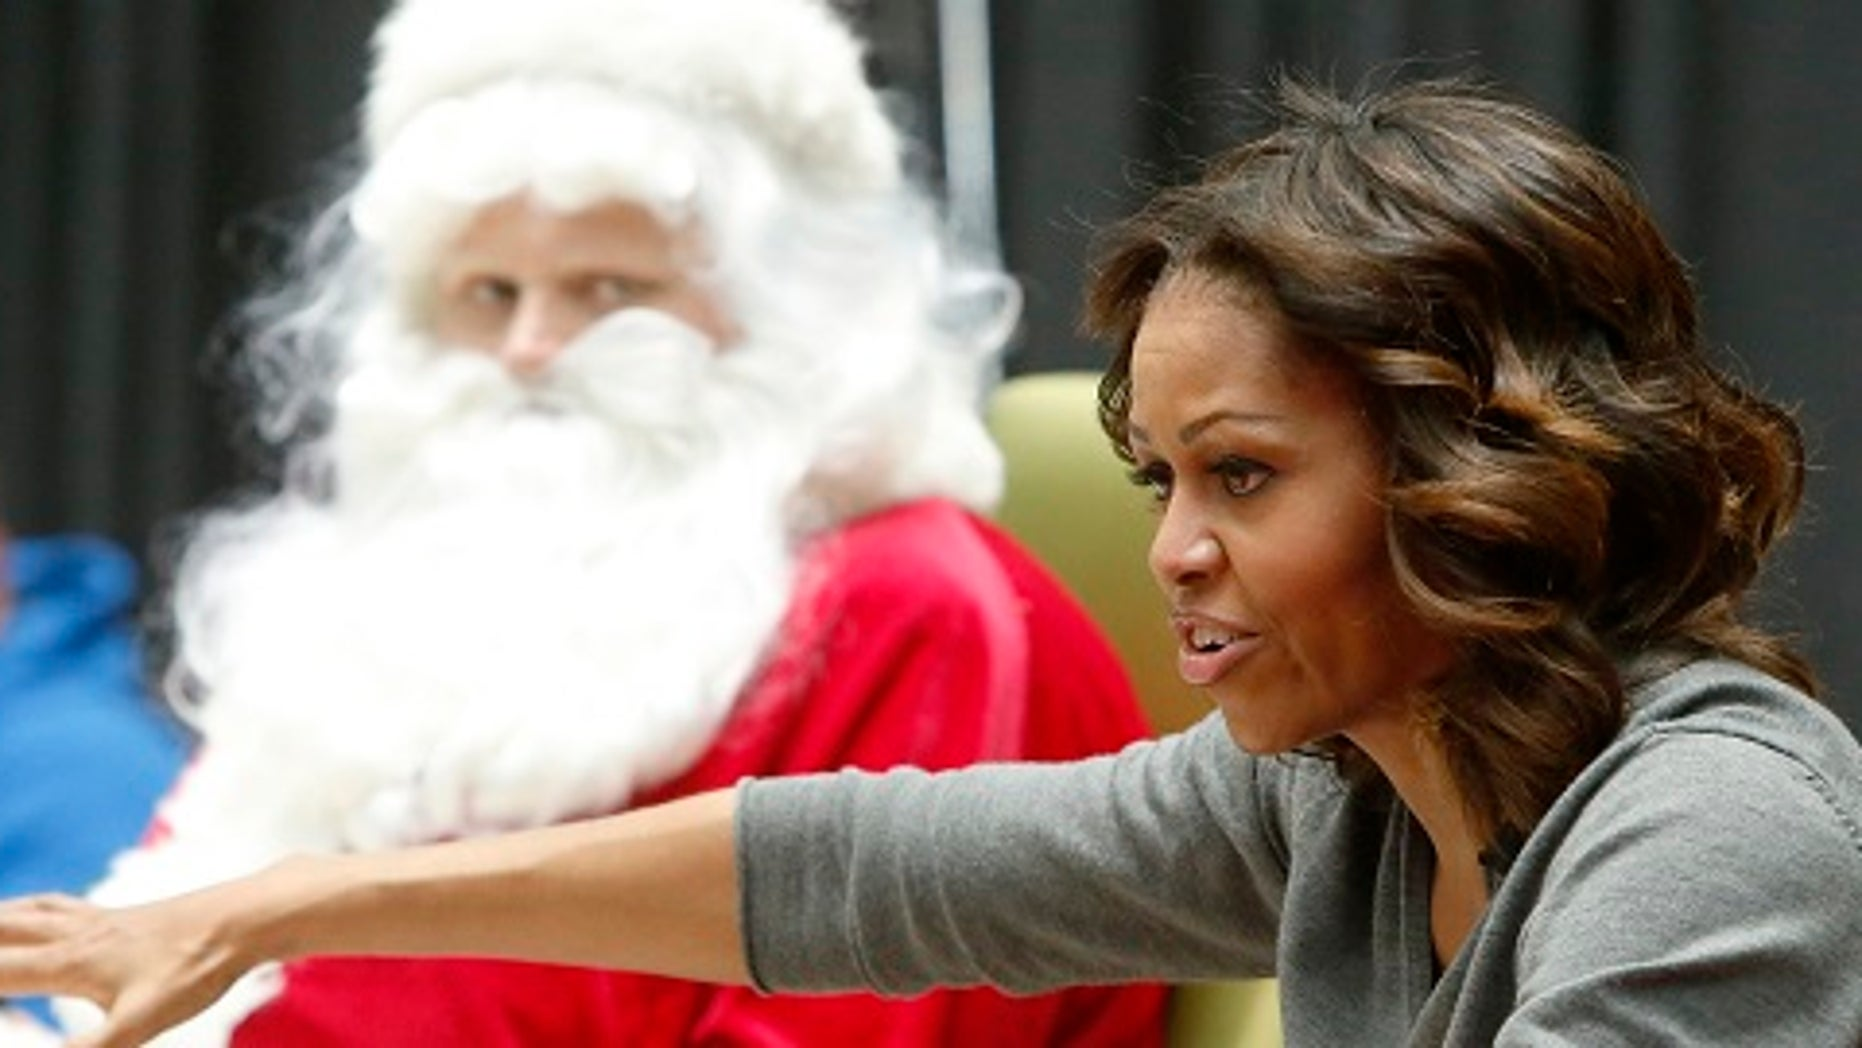 """U.S. first lady Michelle Obama visits young patients and their families at the Children's National Medical Center in Washington, December 16, 2013. Obama read the book """"'Twas the Night Before Christmas"""" before greeting the children along with Santa Claus and presidential dogs Sunny and Bo.  REUTERS/Jonathan Ernst    (UNITED STATES - Tags: POLITICS HEALTH ENTERTAINMENT SOCIETY) - RTX16LGE"""